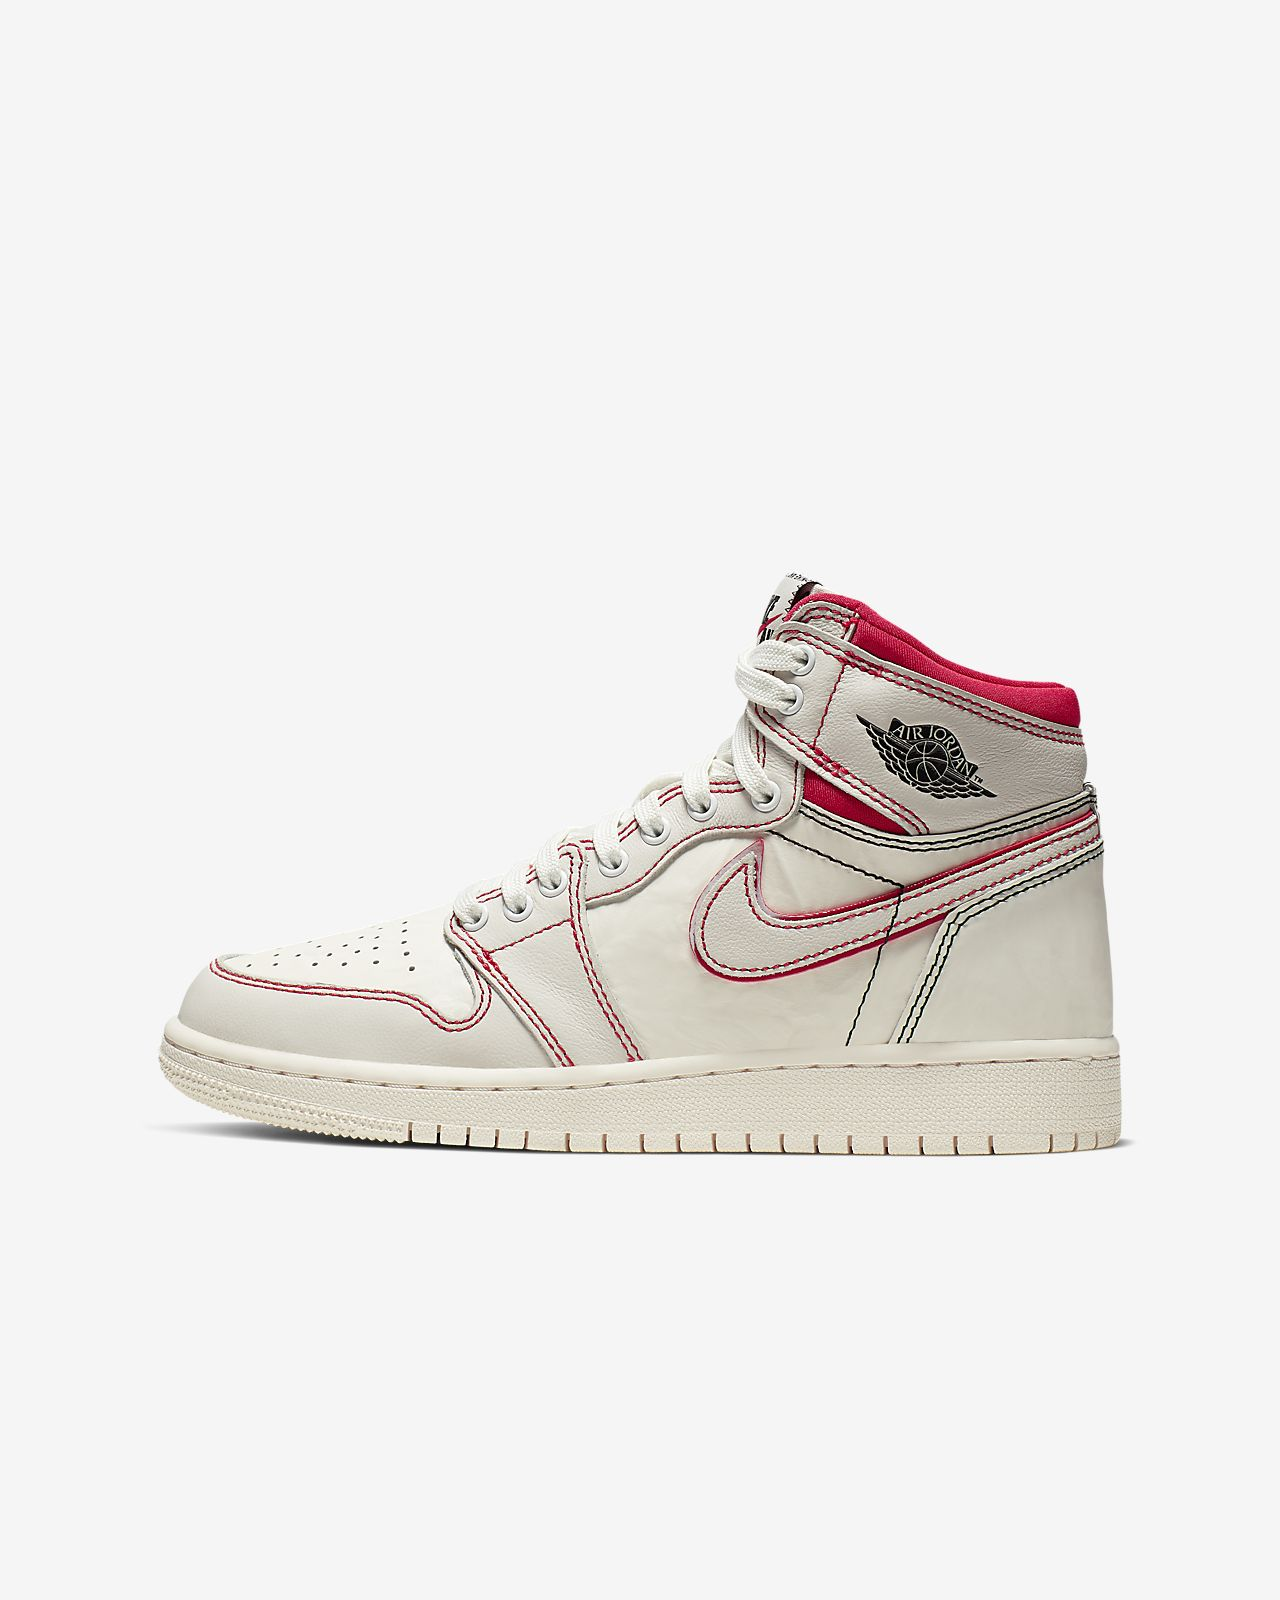 uk availability 408c1 4b5ac ... Air Jordan 1 Retro High OG Boys  Shoe